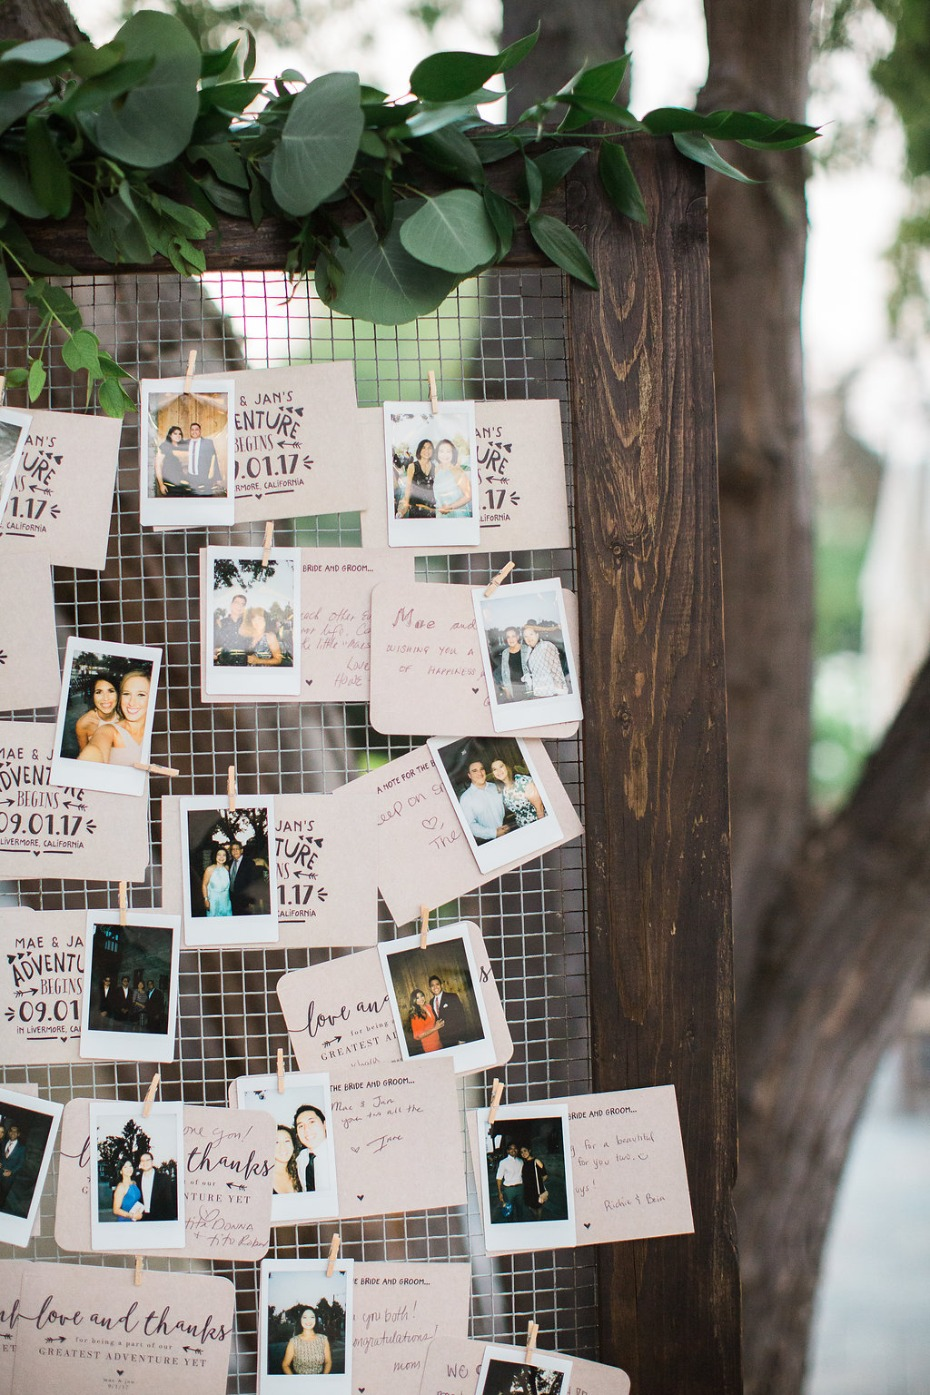 Polaroid guest book with notes